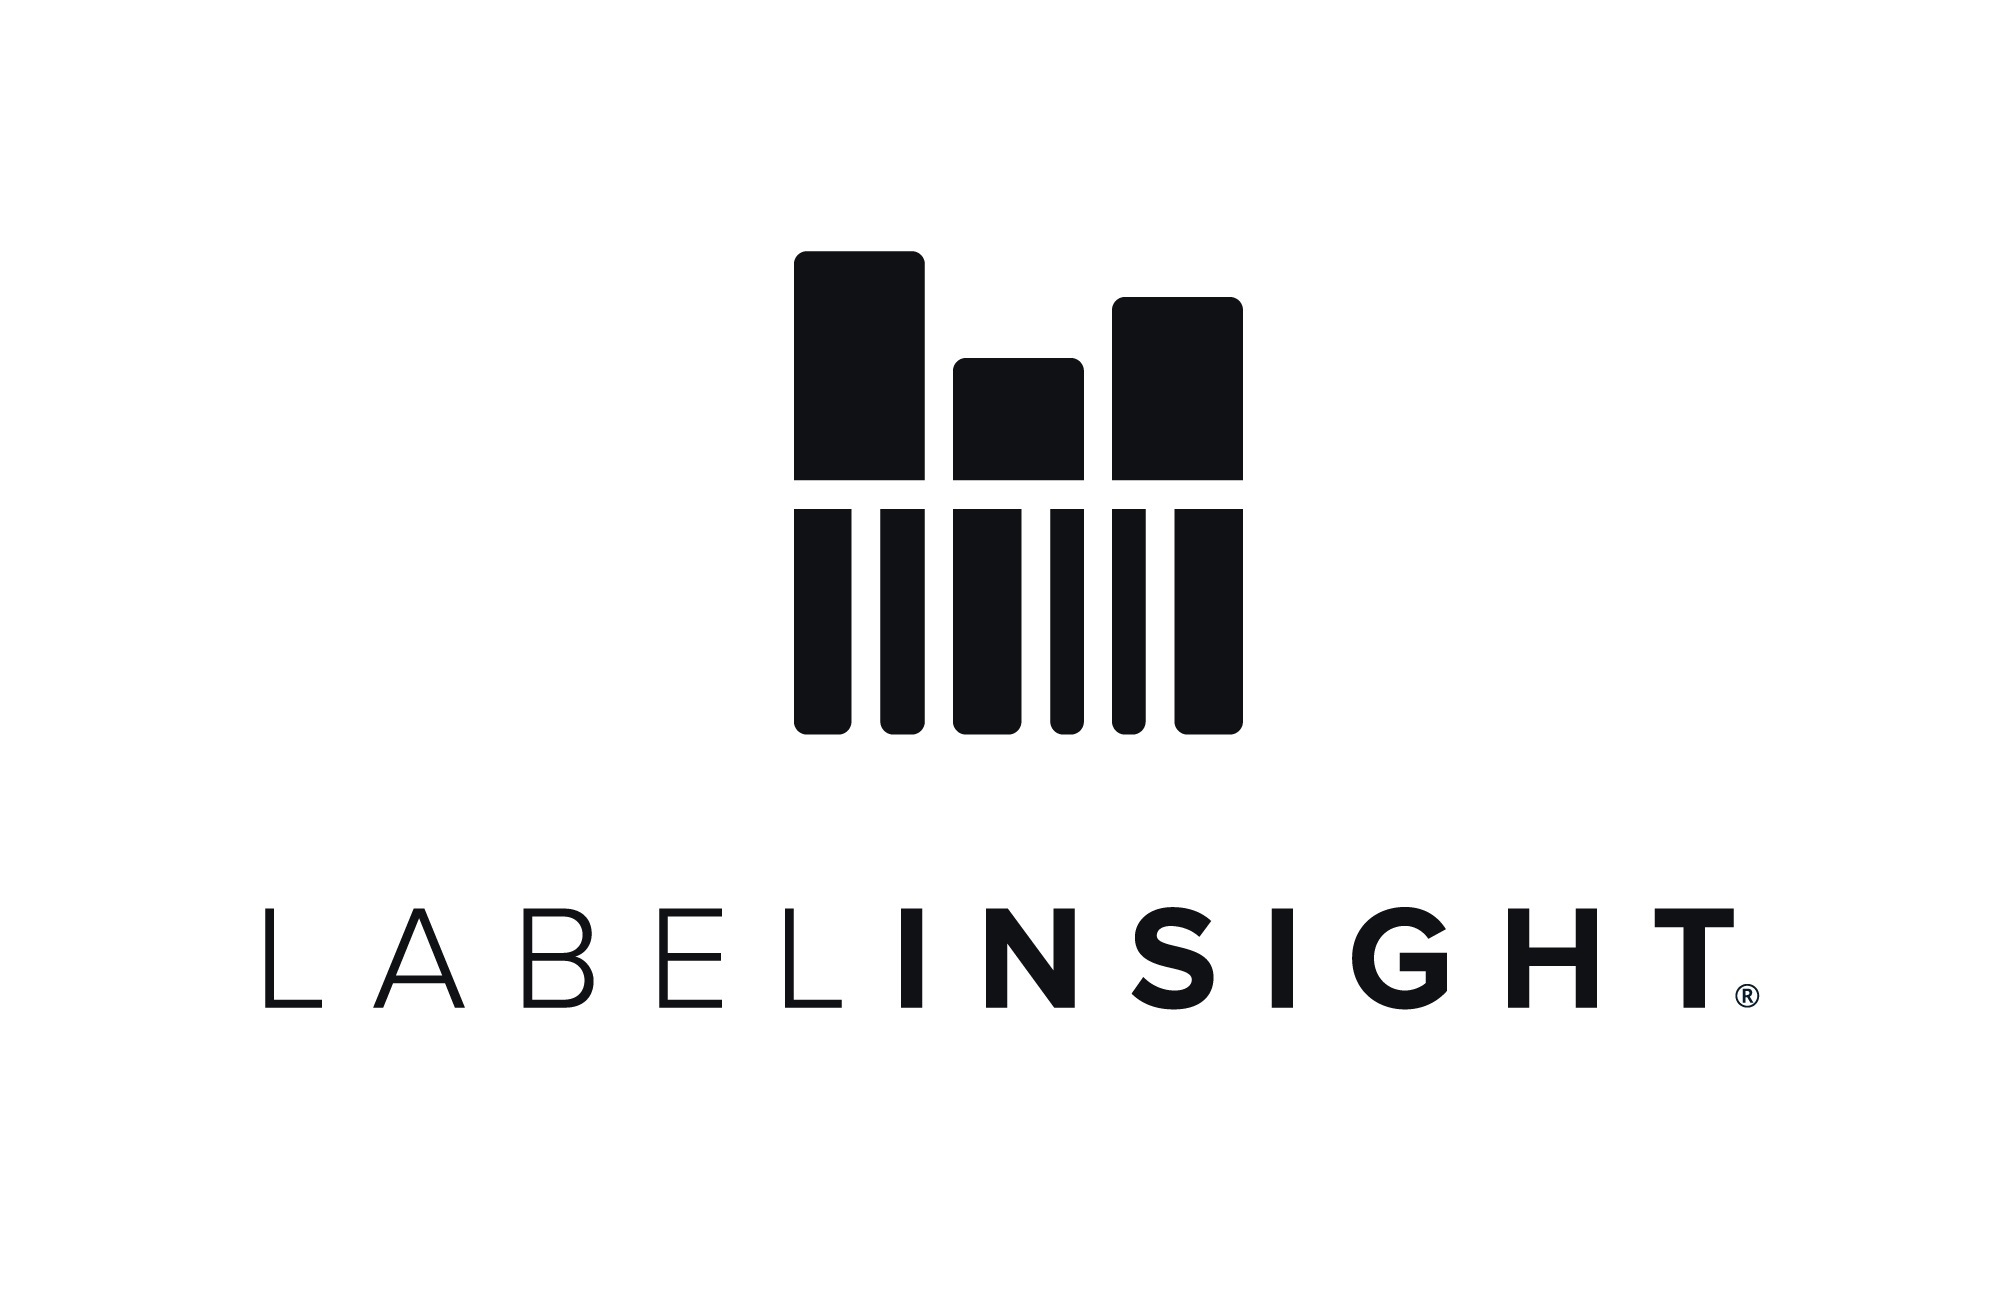 Label Insight logo - Transparency Matters